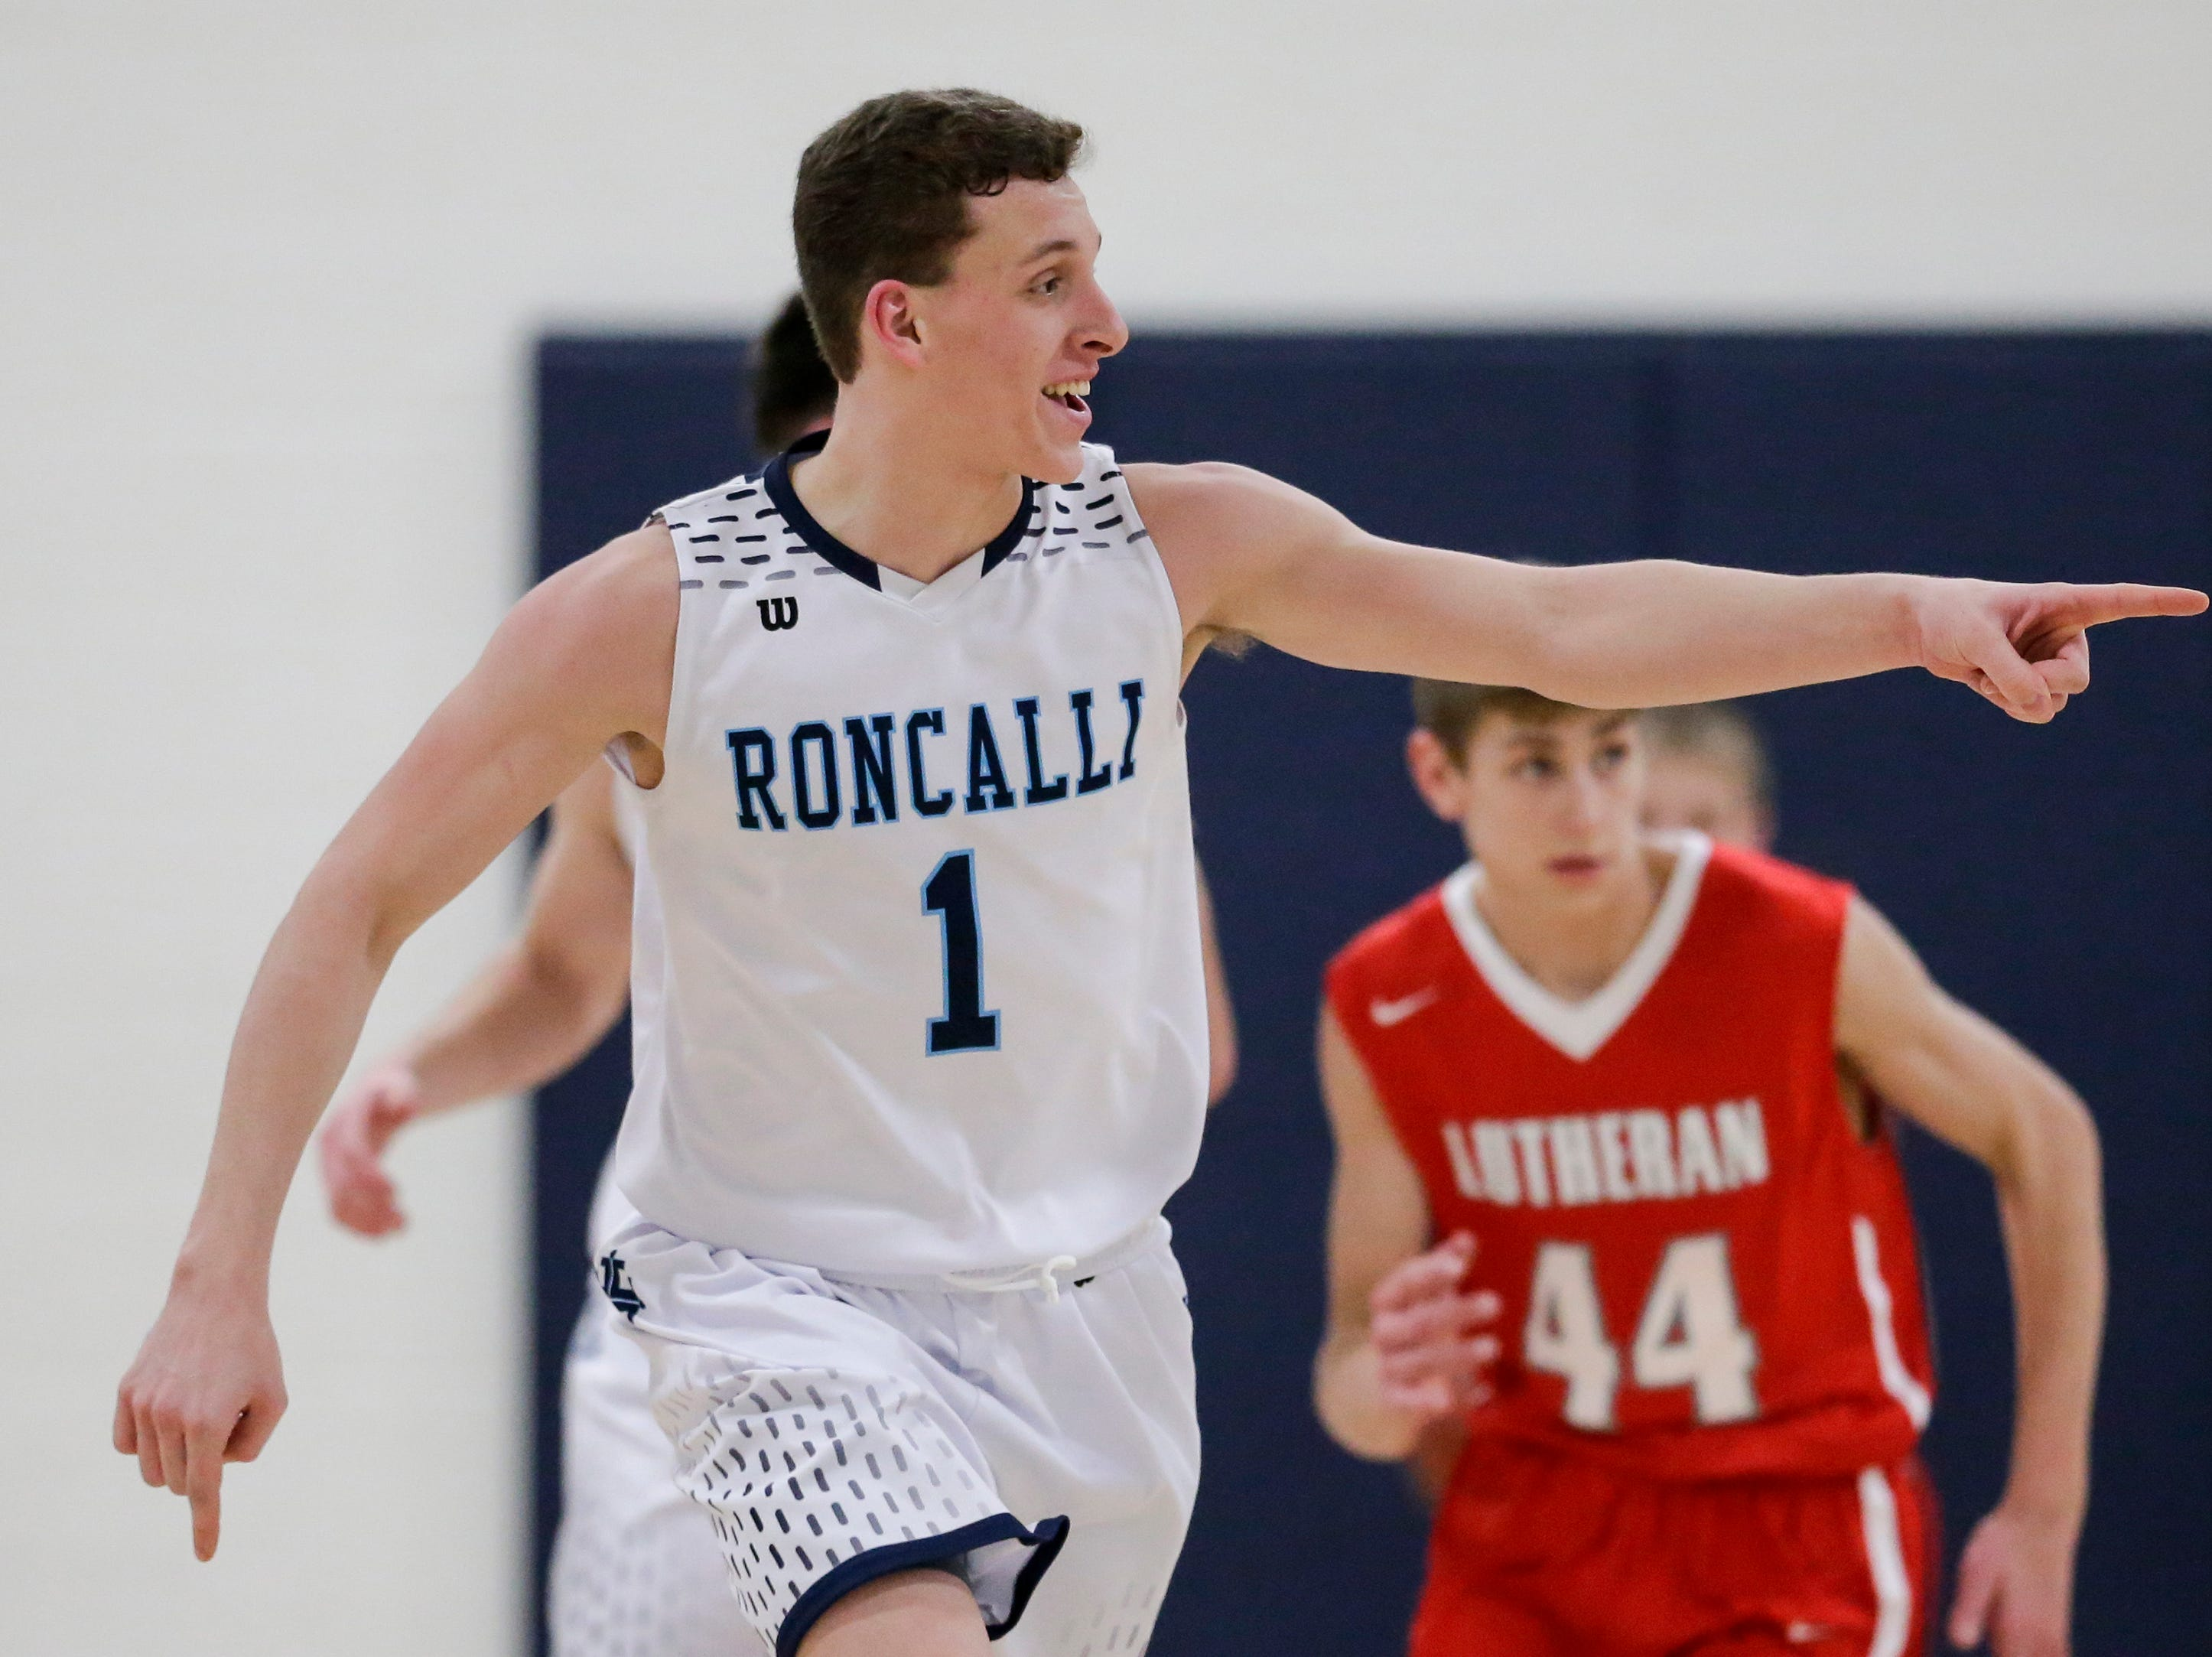 Roncalli's Daniel Burgarino (1) points to his teammate after he scores against Manitowoc Lutheran during a WIAA Division 4 regional semifinal game at Roncalli High School Friday, March 1, 2019, in Manitowoc, Wis. Joshua Clark/USA TODAY NETWORK-Wisconsin